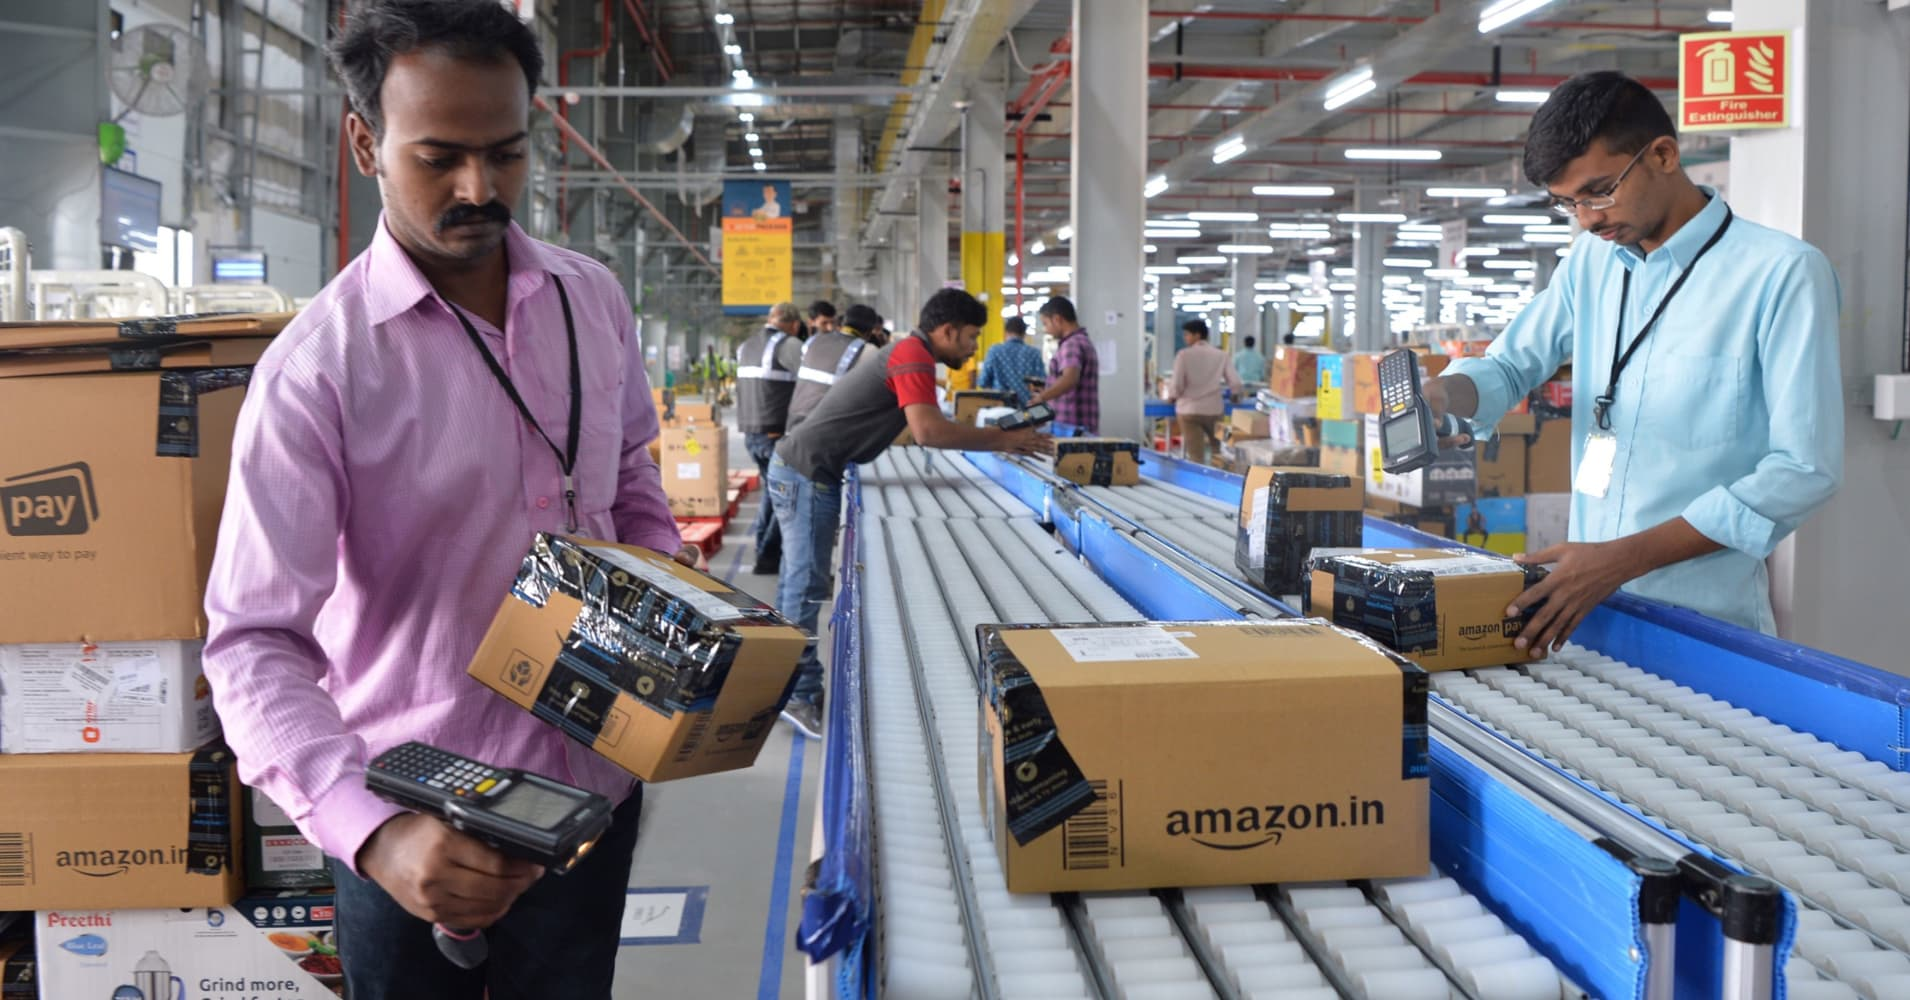 Amazon is on a hiring spree in India, even as new restrictions on foreign sellers loom